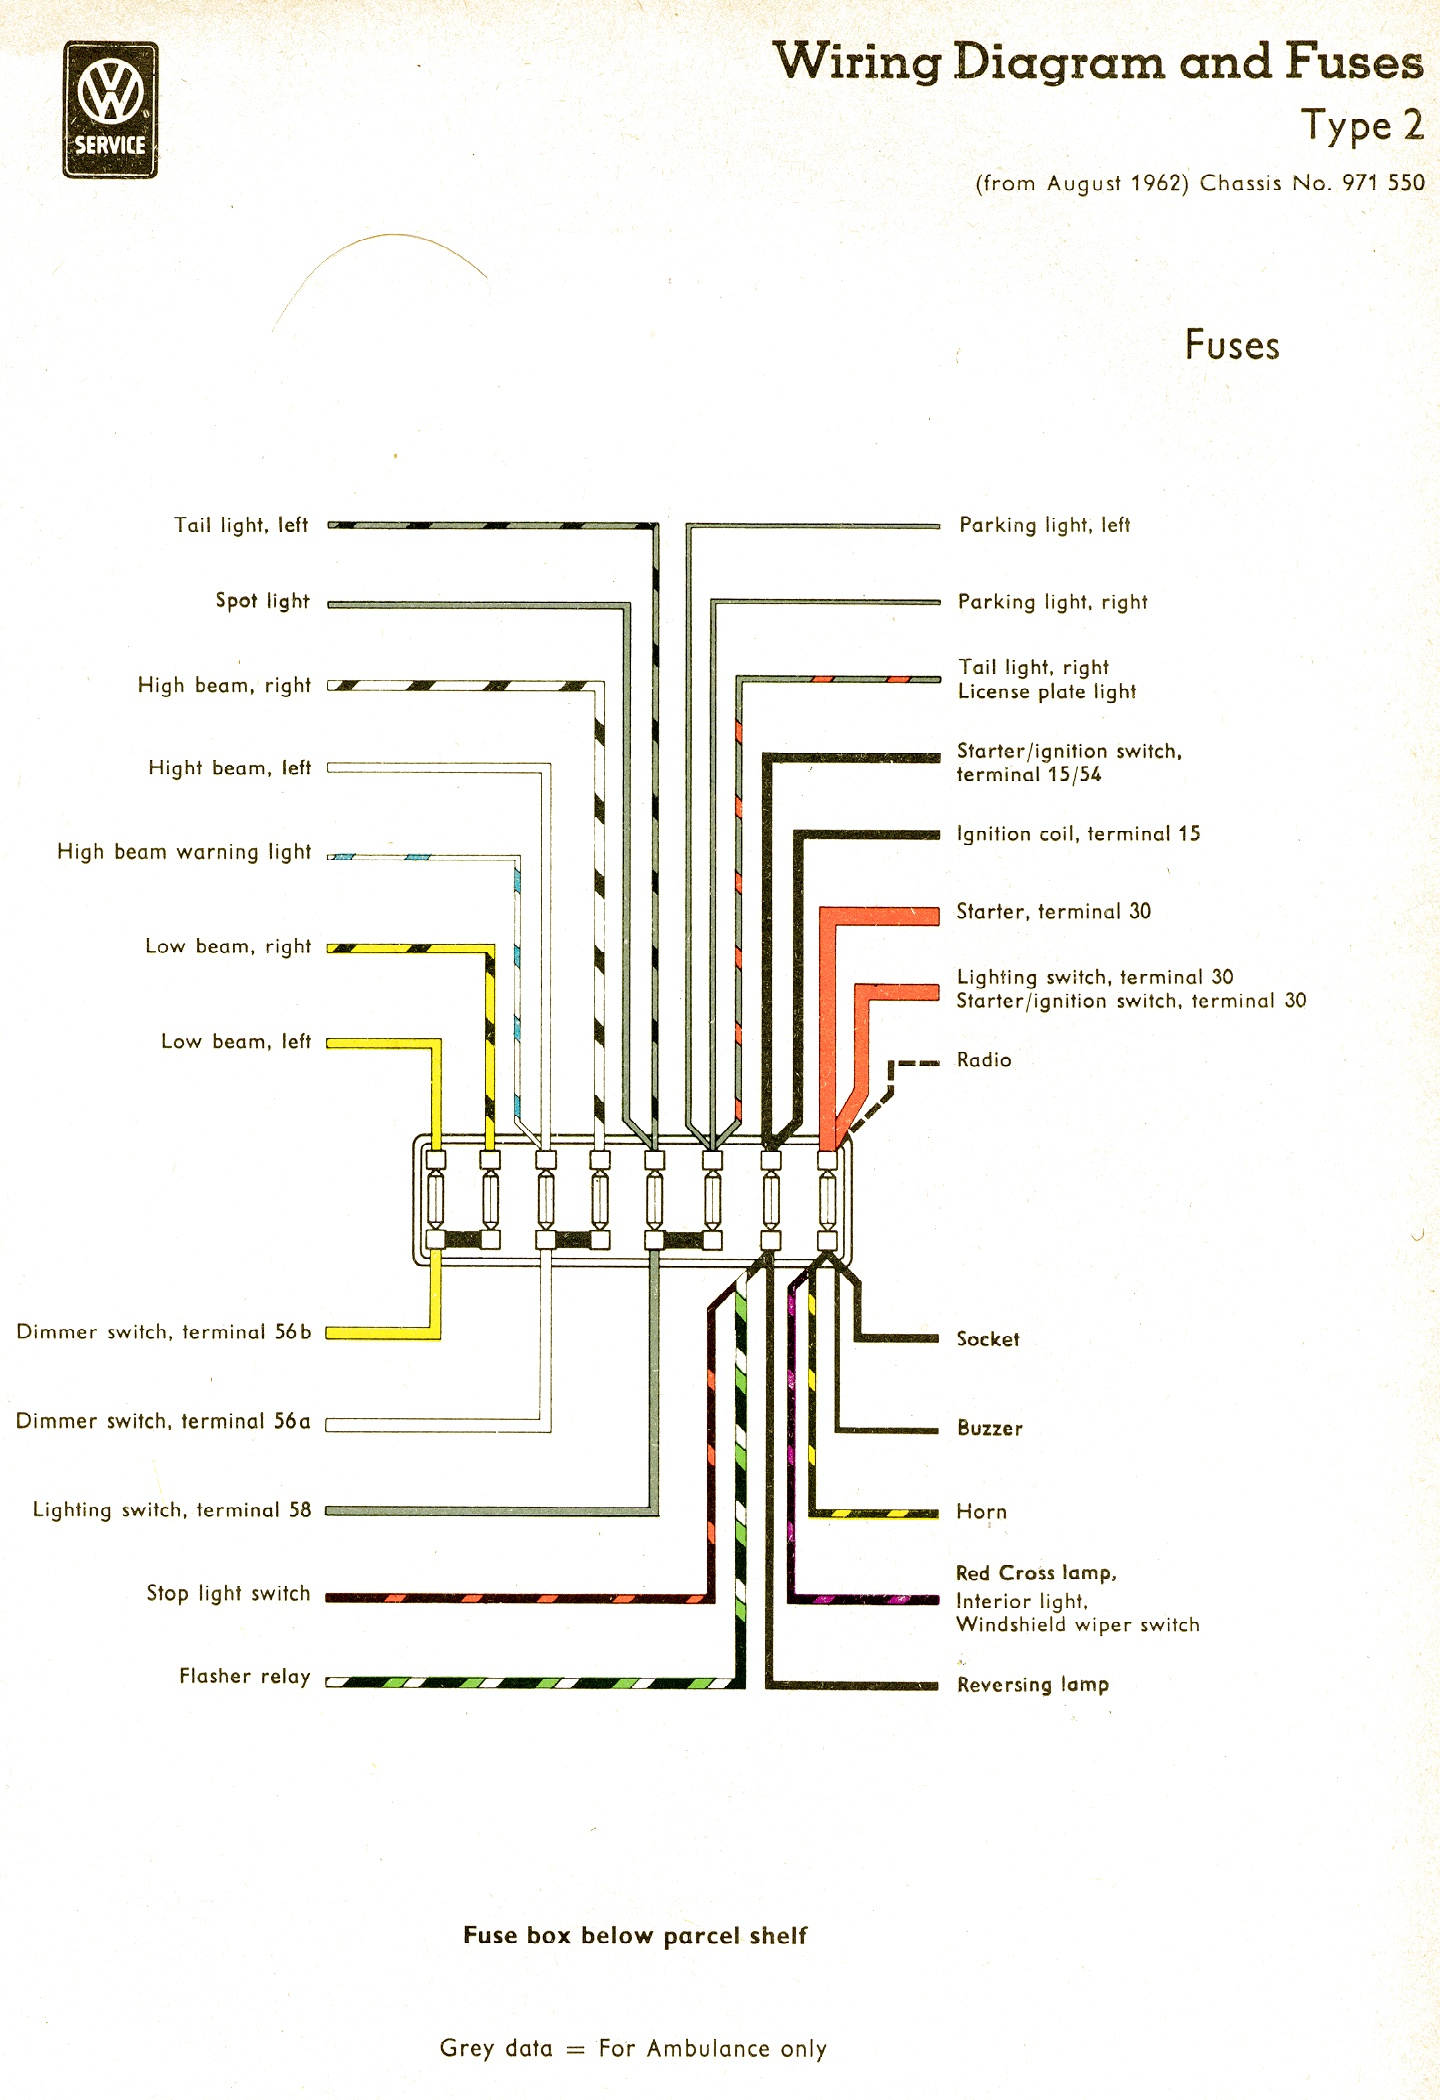 bus 62 fuse vw wiring diagrams 1967 chevy c10 fuse box diagram at n-0.co